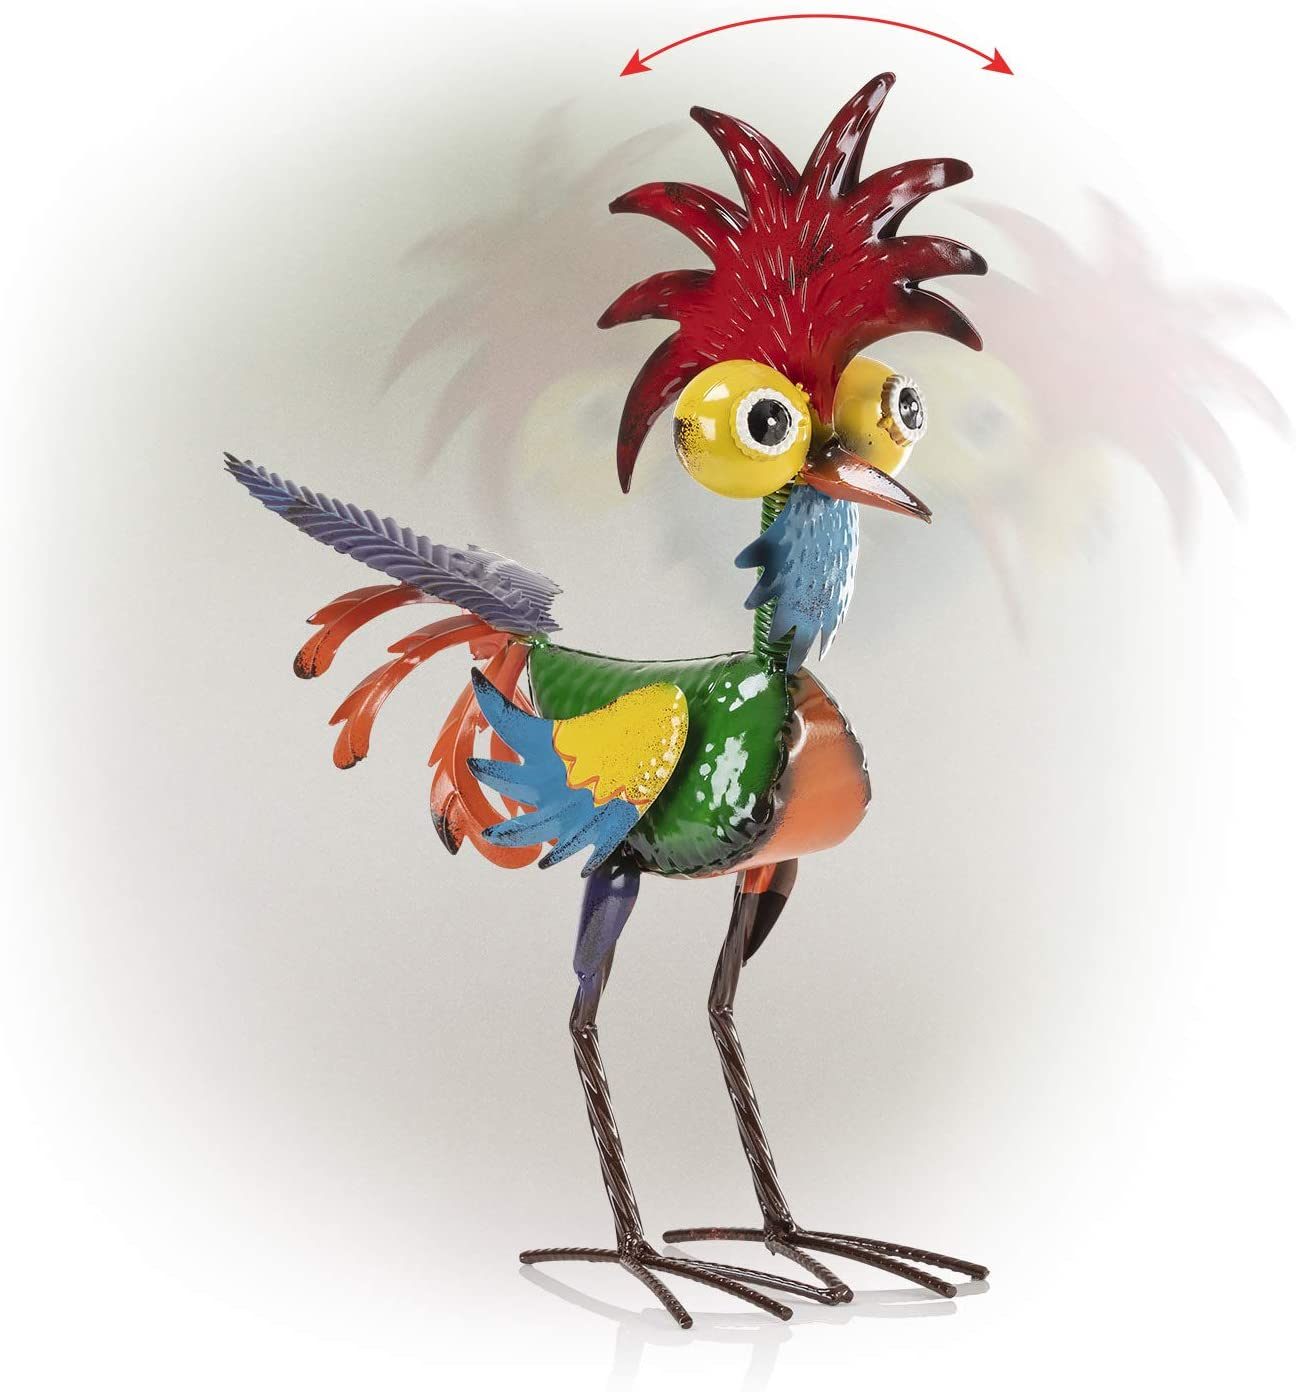 Alpine Corporation MZP388 Wacky Tropical Metal Rooster Décor Statue, 17 Inch Tall, Multi-Color